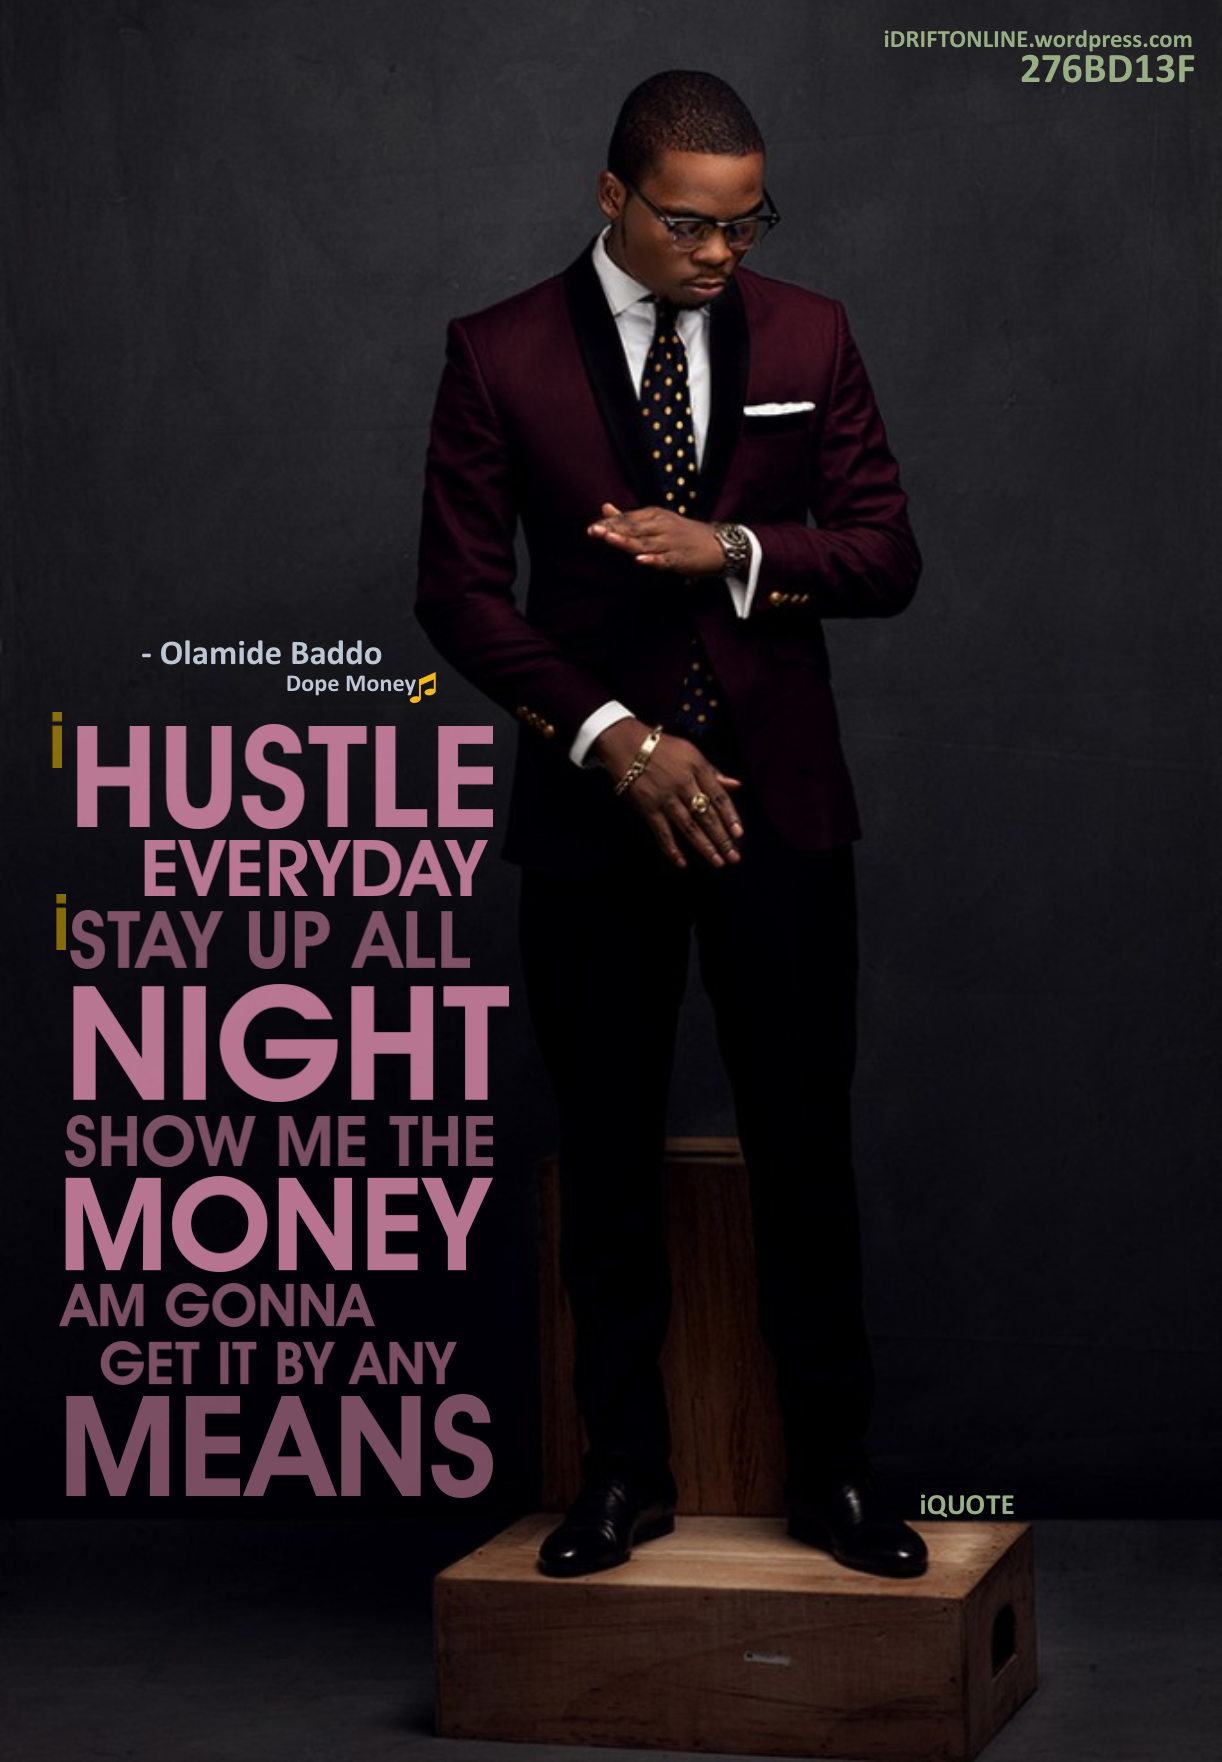 20 Motivational And Inspirational Quotes From Olamide Badoo